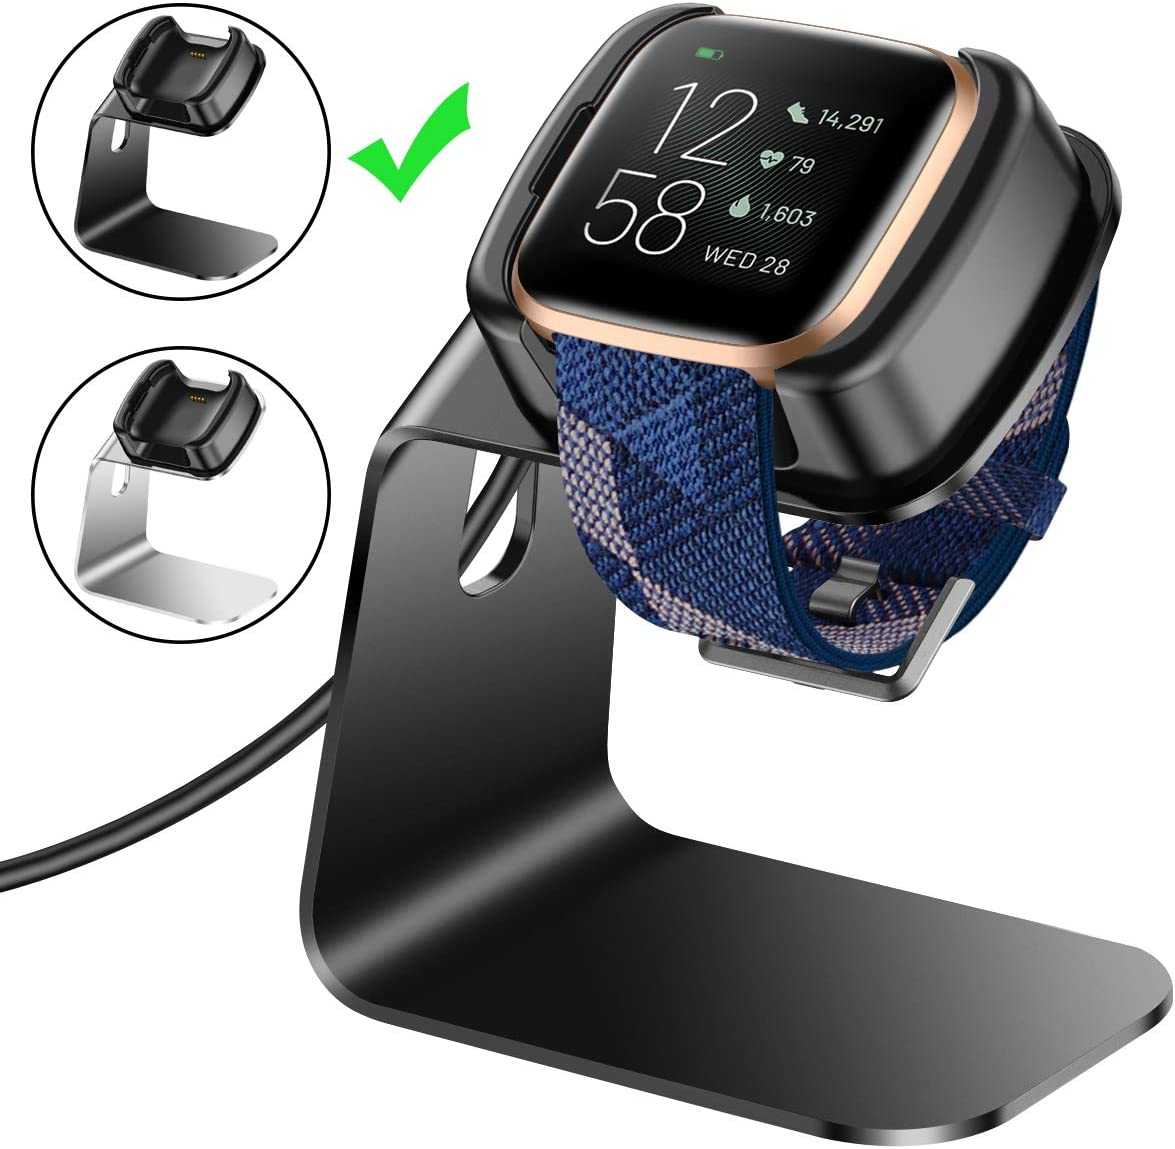 Replacement USB Charging Cable Cord Cradle Dock Accessories for Versa 2 Smartwatch Only CAVN 3ft Charger Cable Compatible with Fitbit Versa 2 Charger 2019 September Released